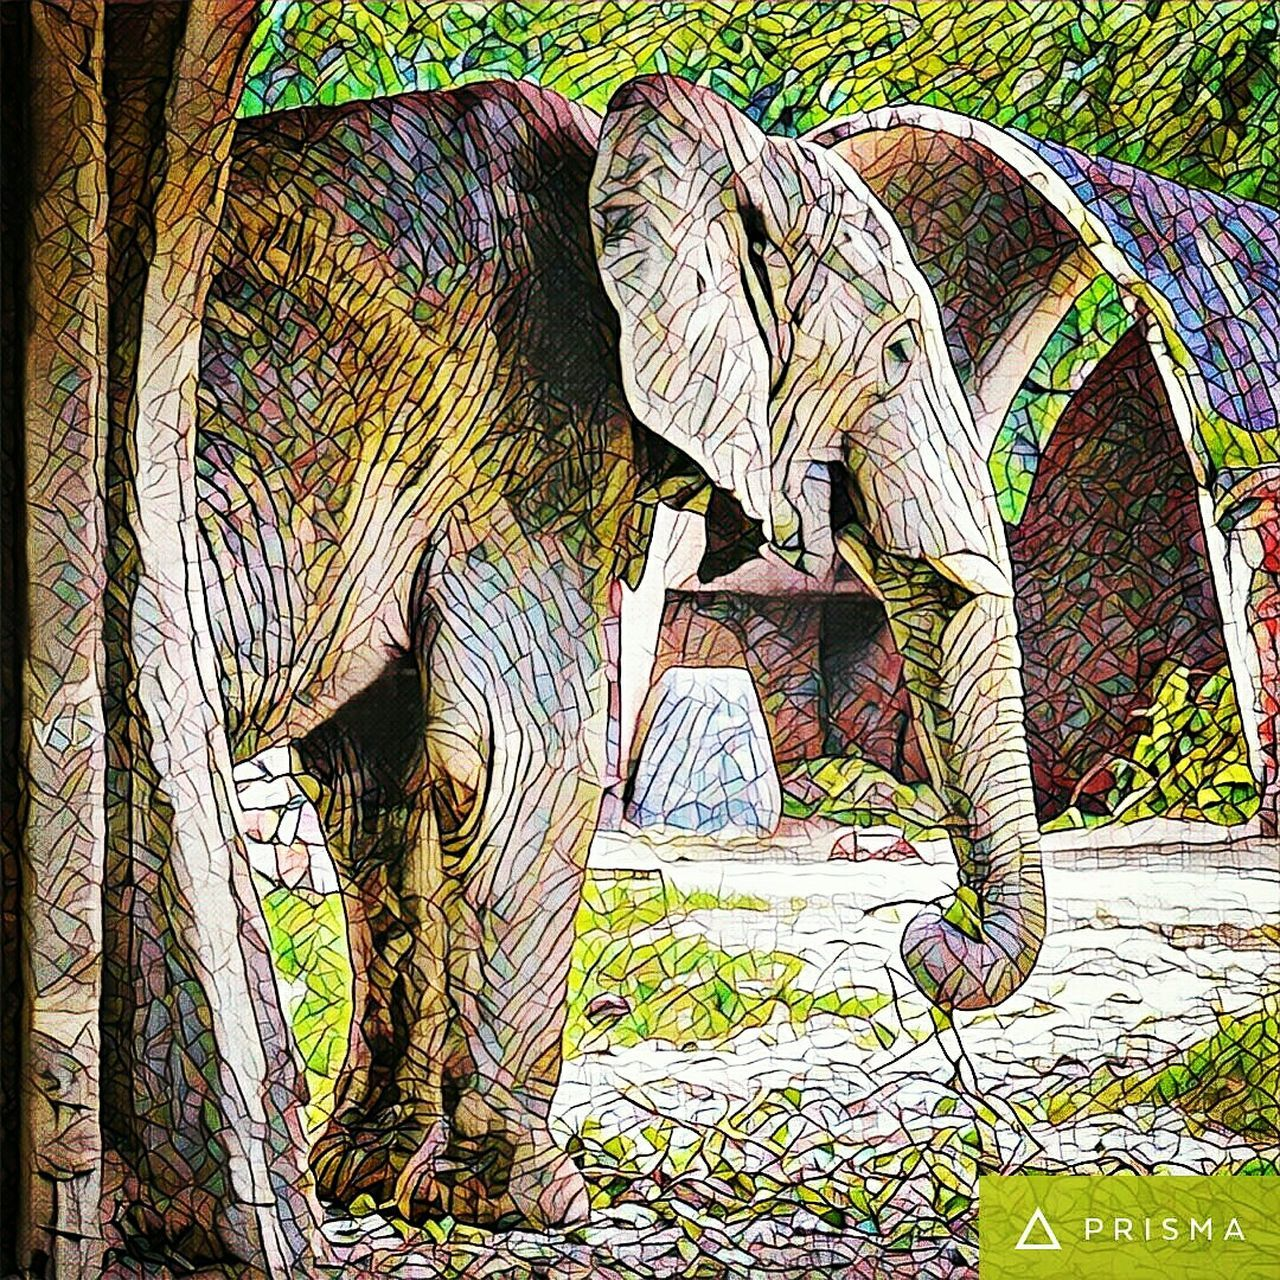 Memorable moment Colour Of Life Eyes Never Lie Elephant ♥ Elephants Wildphotography Wildlife Animal Photography Animallovers Innocent Eyes Prismacolor Prismatic Zoological Park DelhiGram Relaxing Beauty In Nature Naturesbeauty